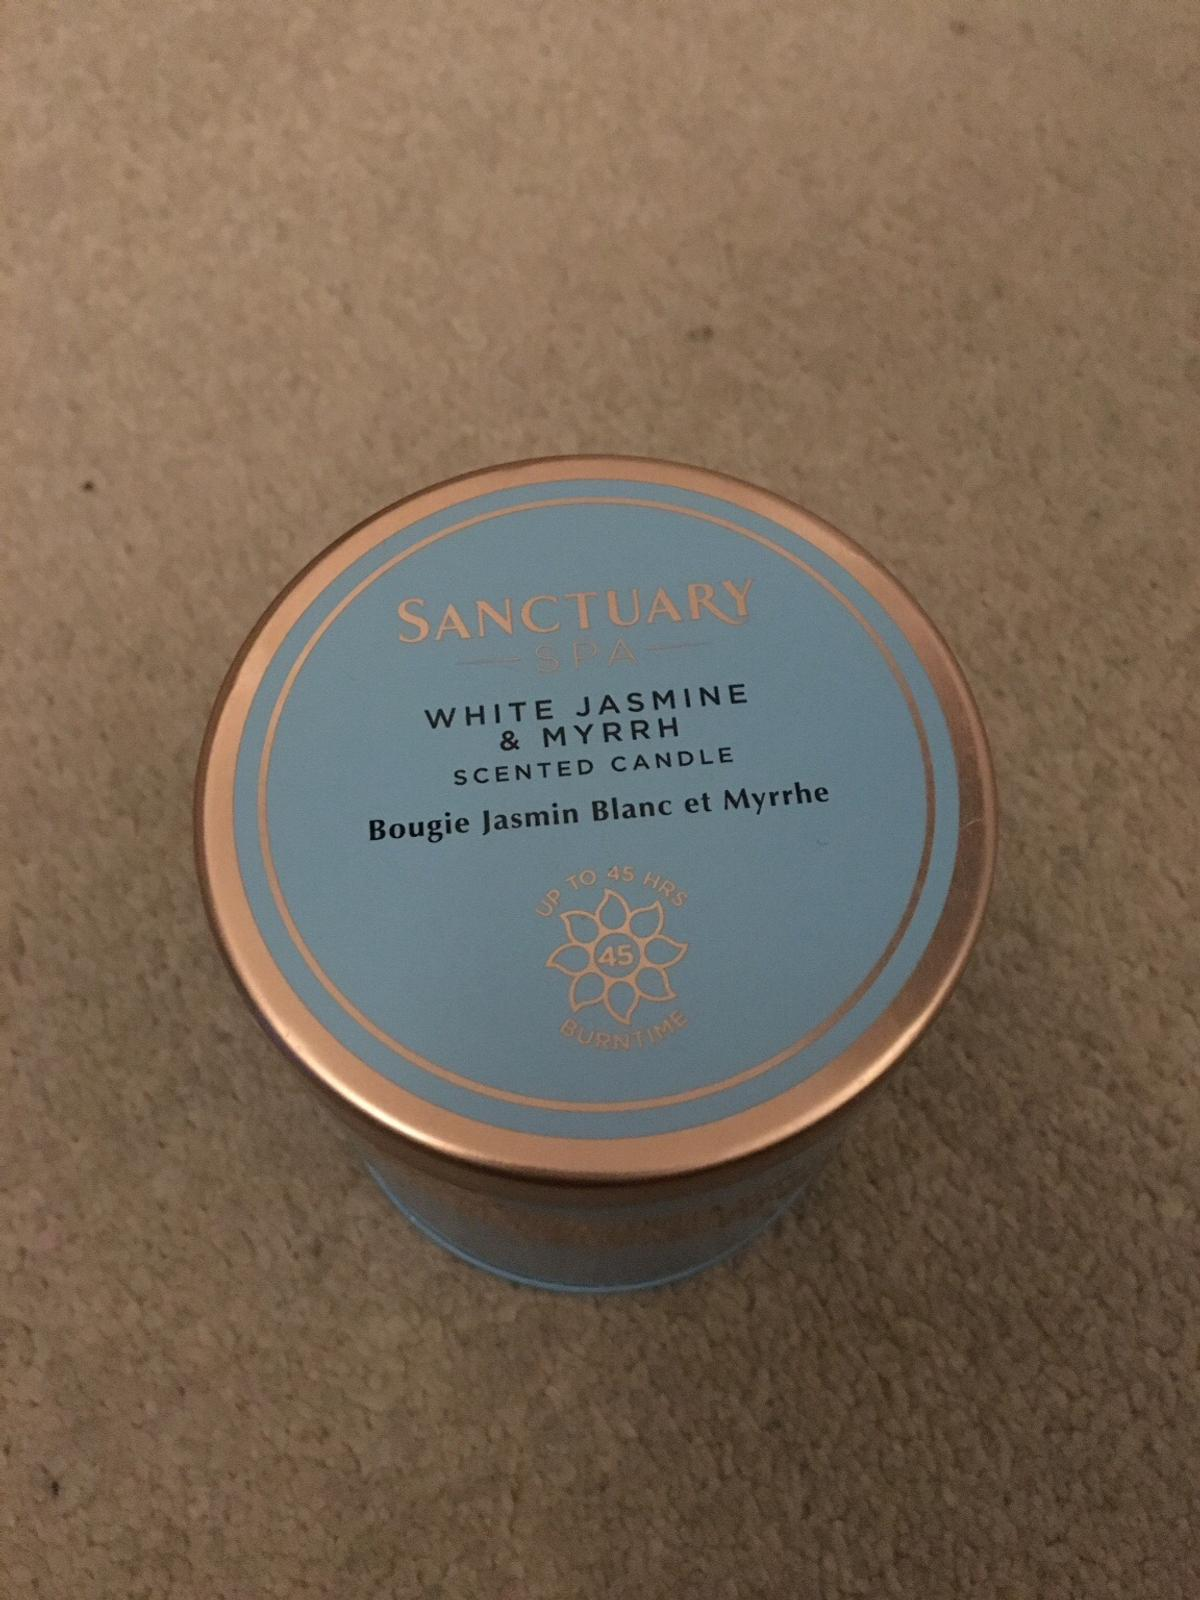 This is a brand new candle that was an unwanted gift due to allergies. It normally retails at Boots for £12.50.